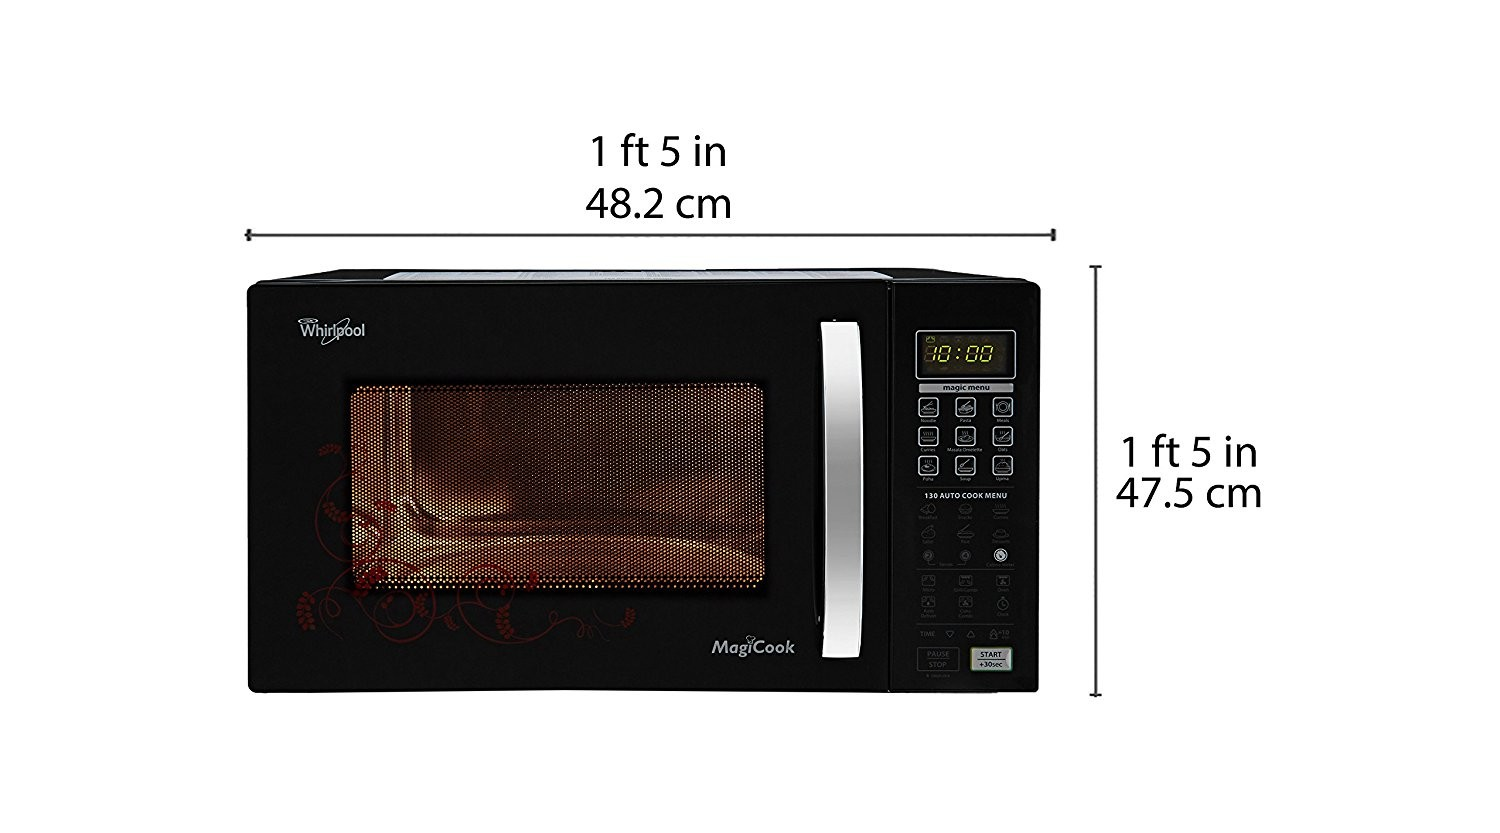 microwave from Whirlpool brand